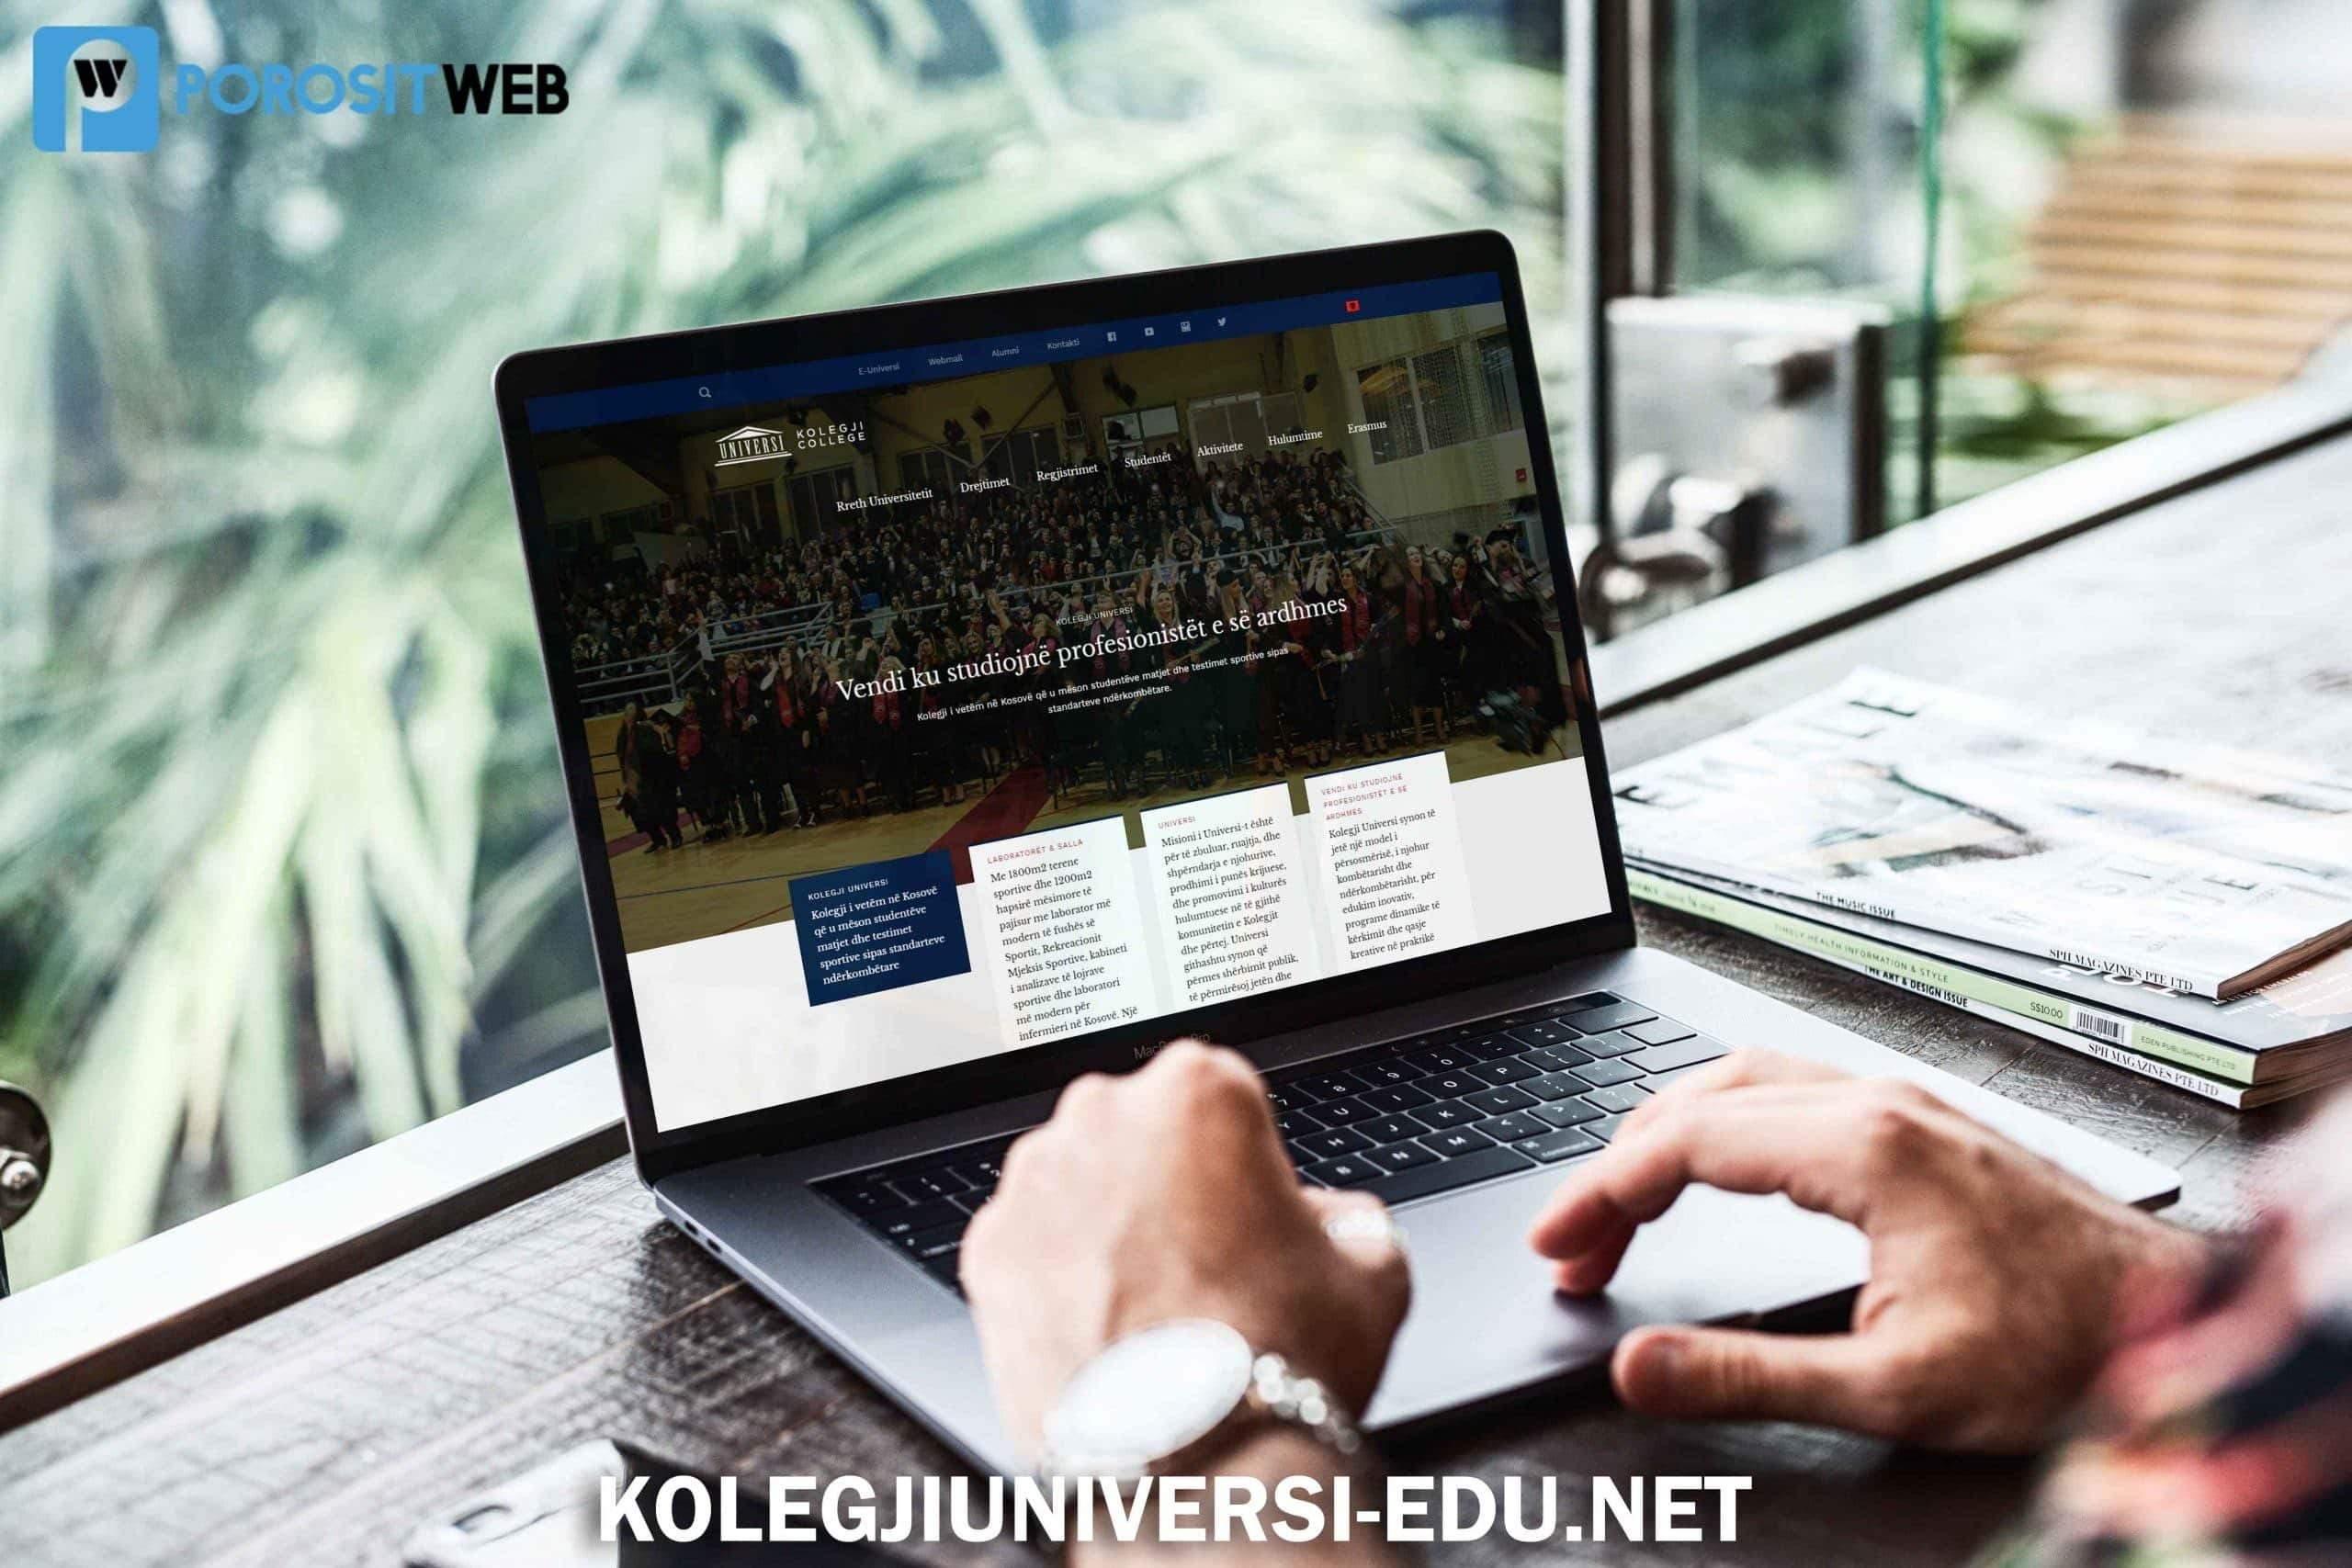 webfaqe per universitet